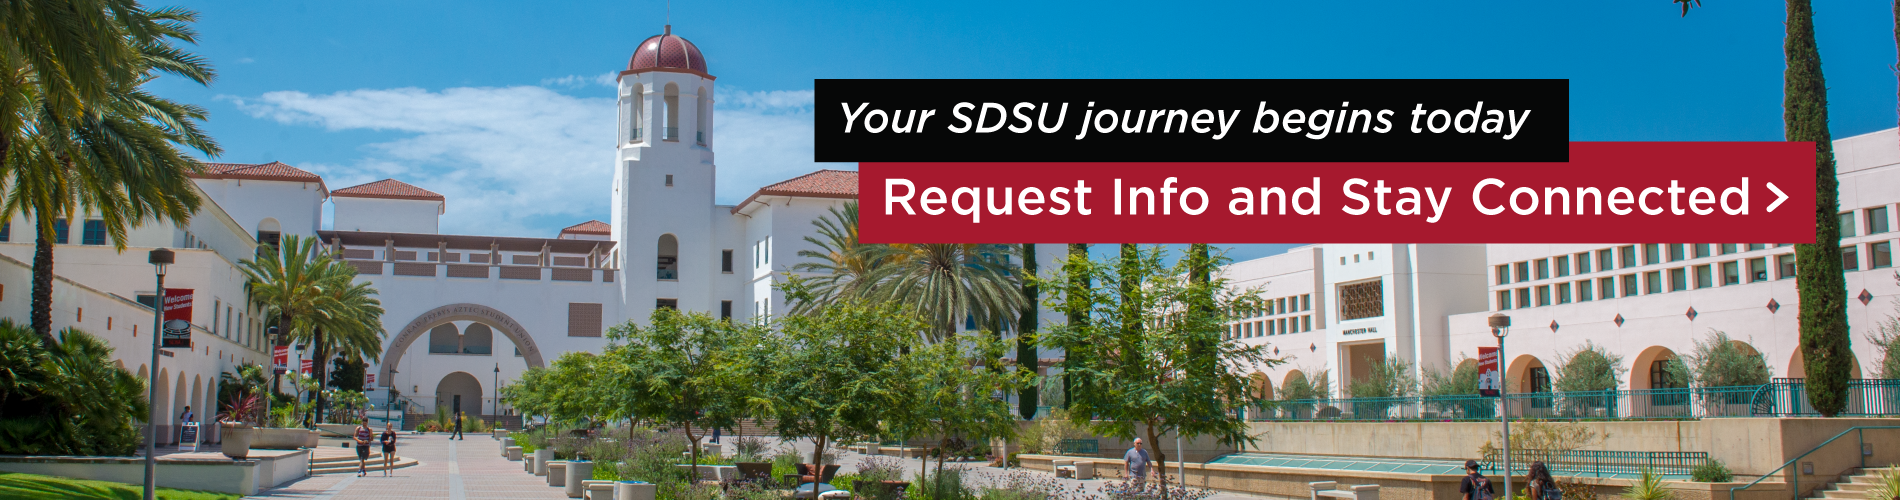 Your SDSU journey begins today! Request info and stay connected.